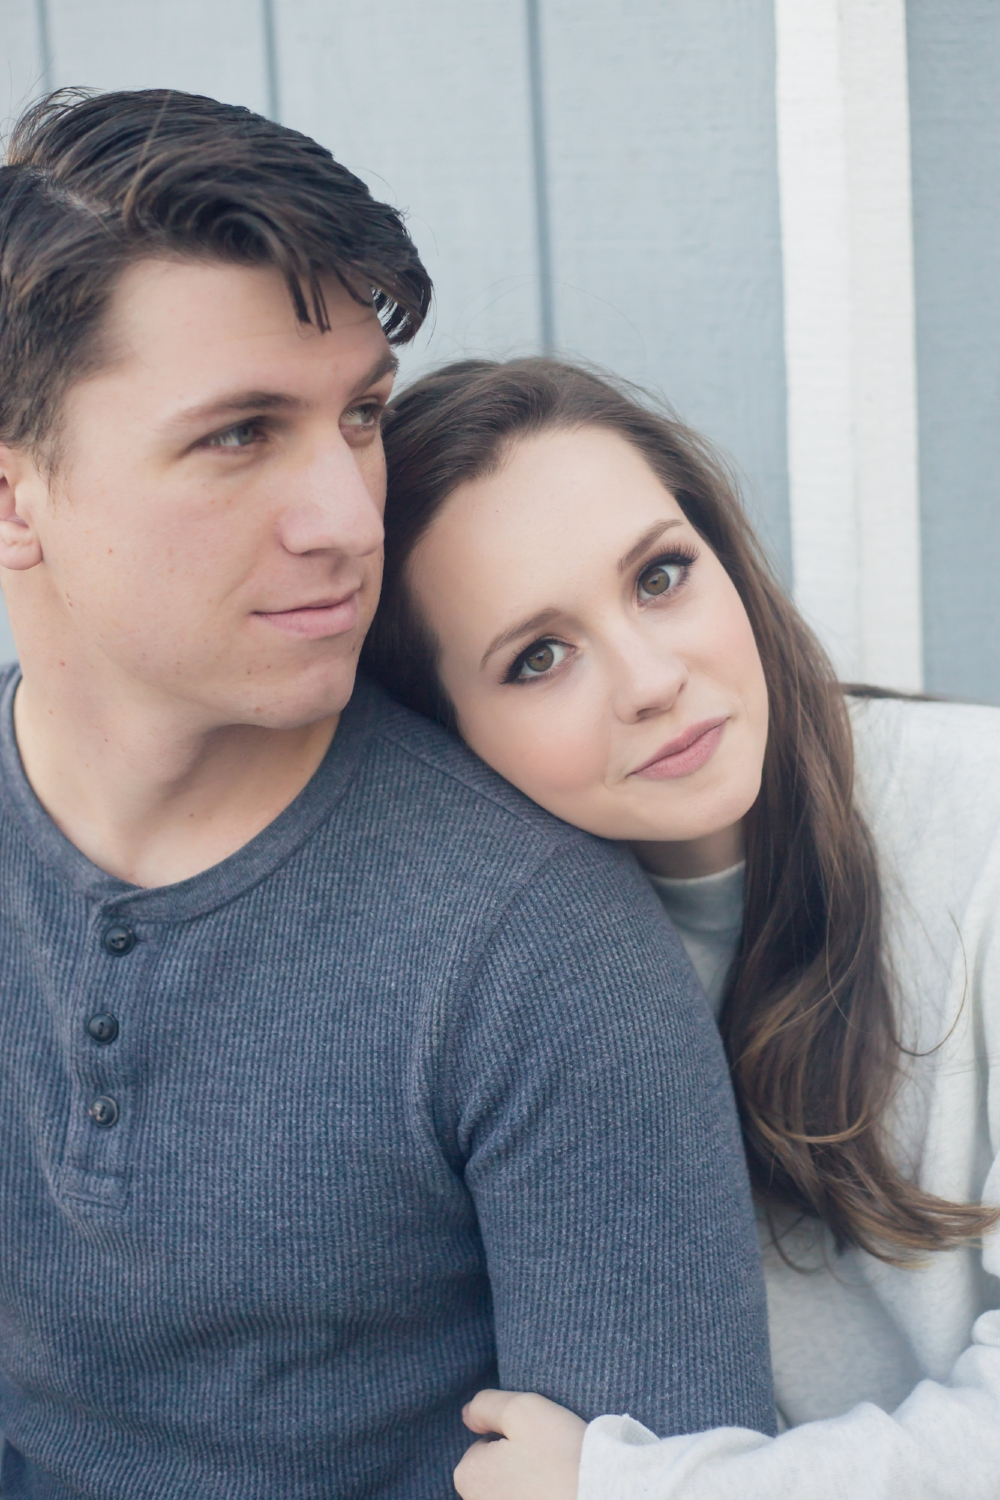 Simple Engagement Photos with Couple Posing with Hair and Makeup.Hair and Makeup done by Vanity Belle in Orange County (Costa Mesa) and San Diego (La Jolla).